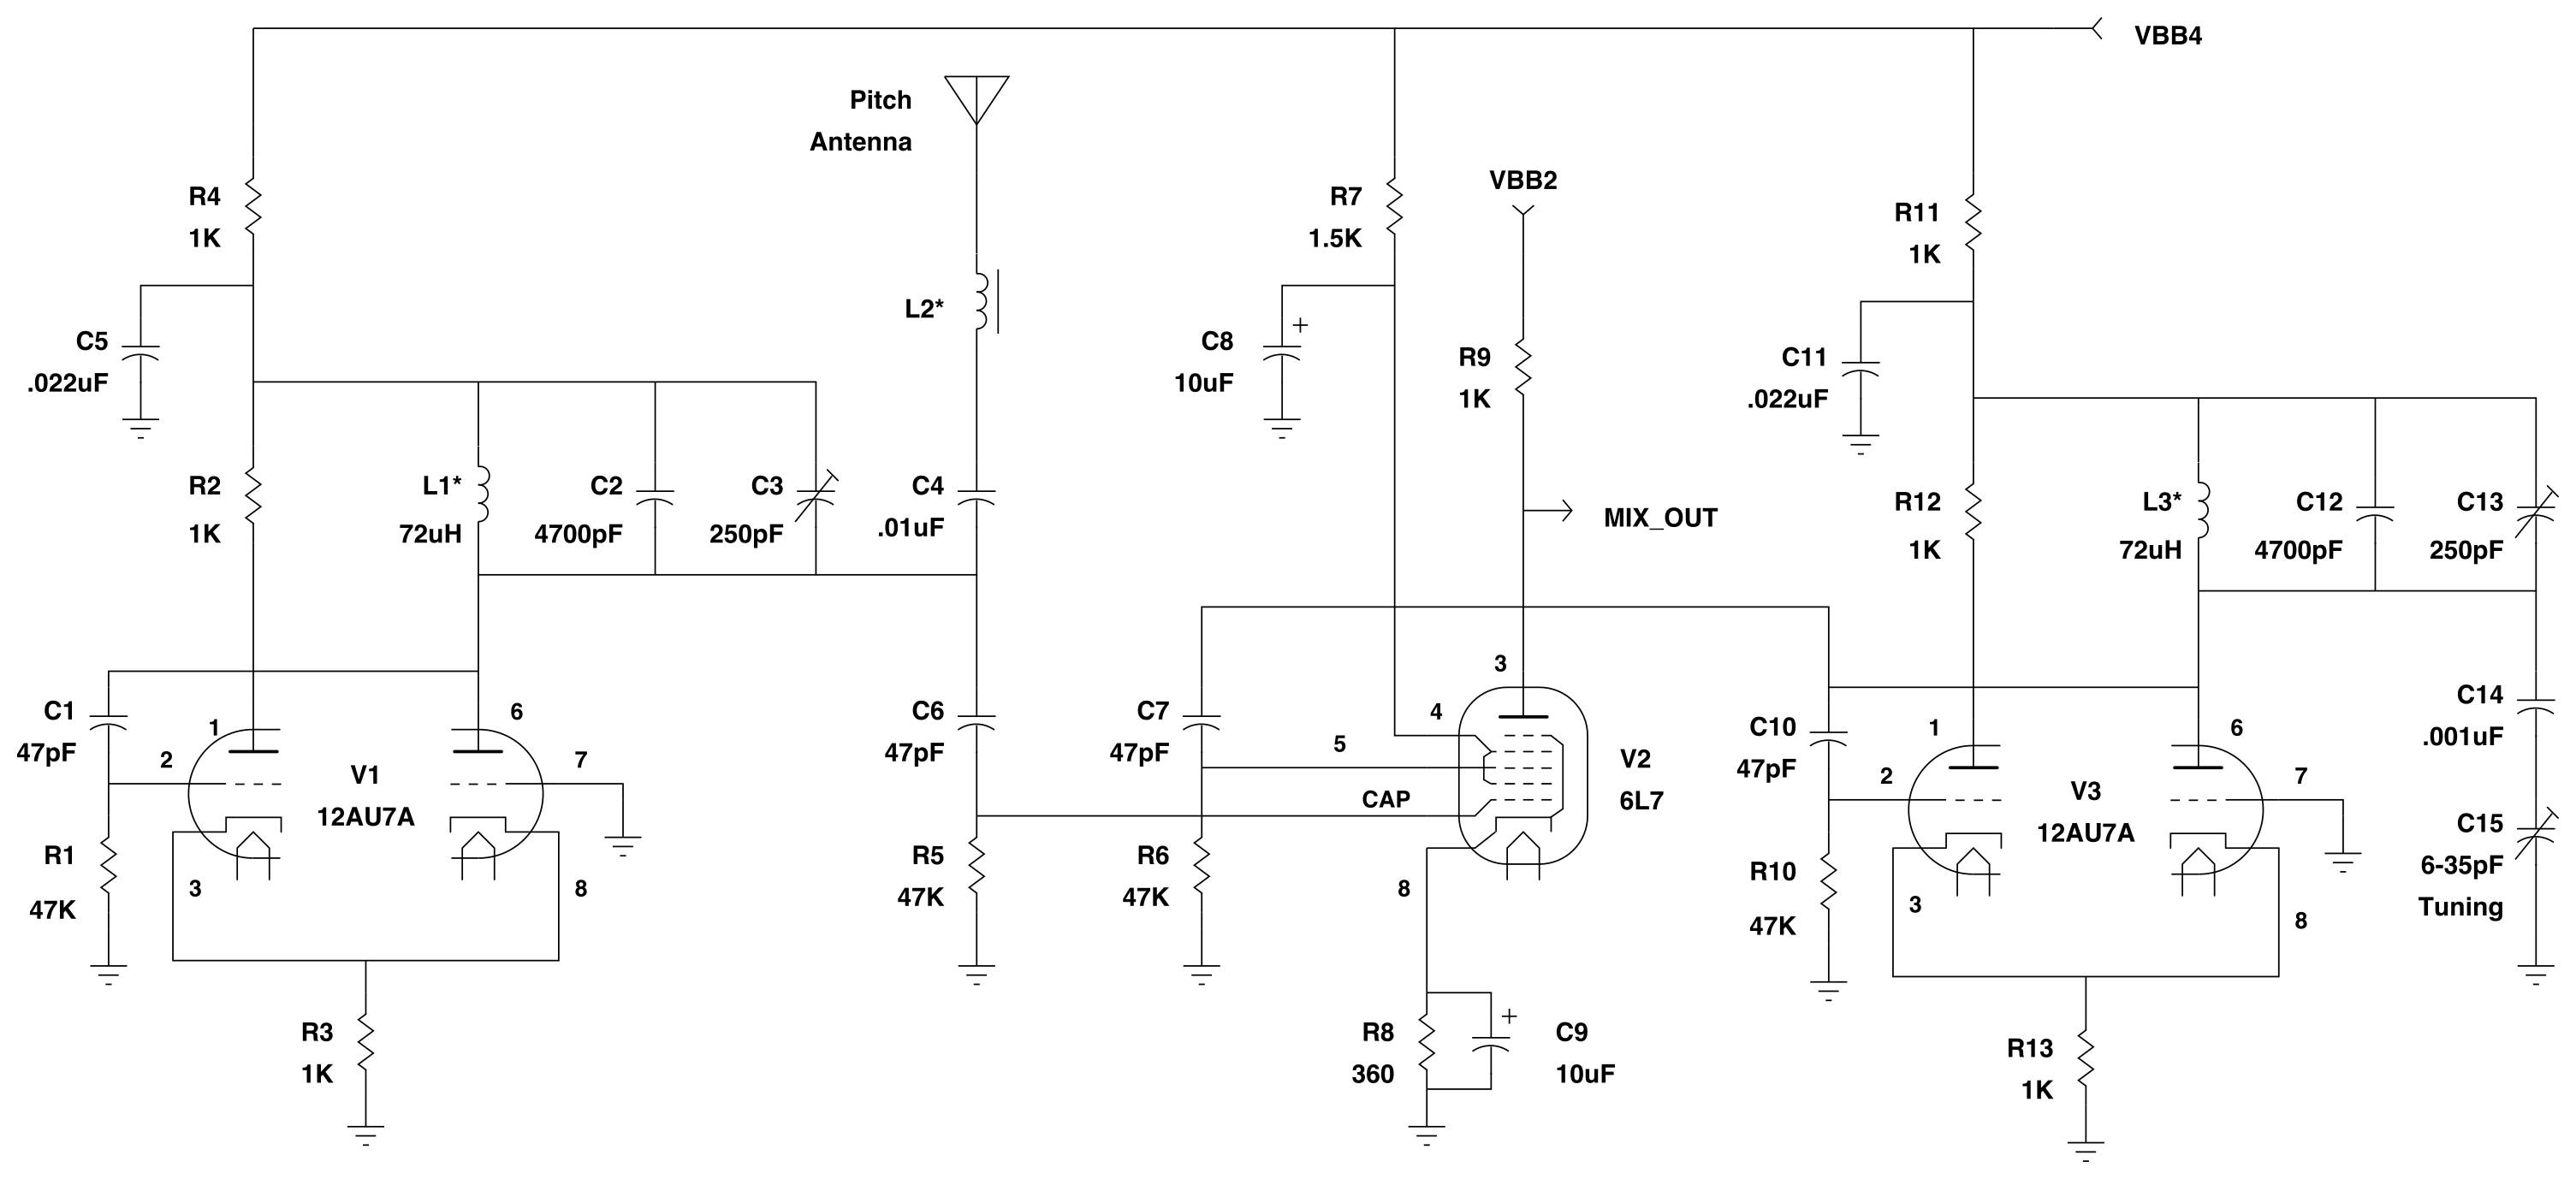 Channel Road Amplification Vacuum Tube Theremin Frequency Audio Oscillator Variable Circuit Pitch Oscillators And Mixer